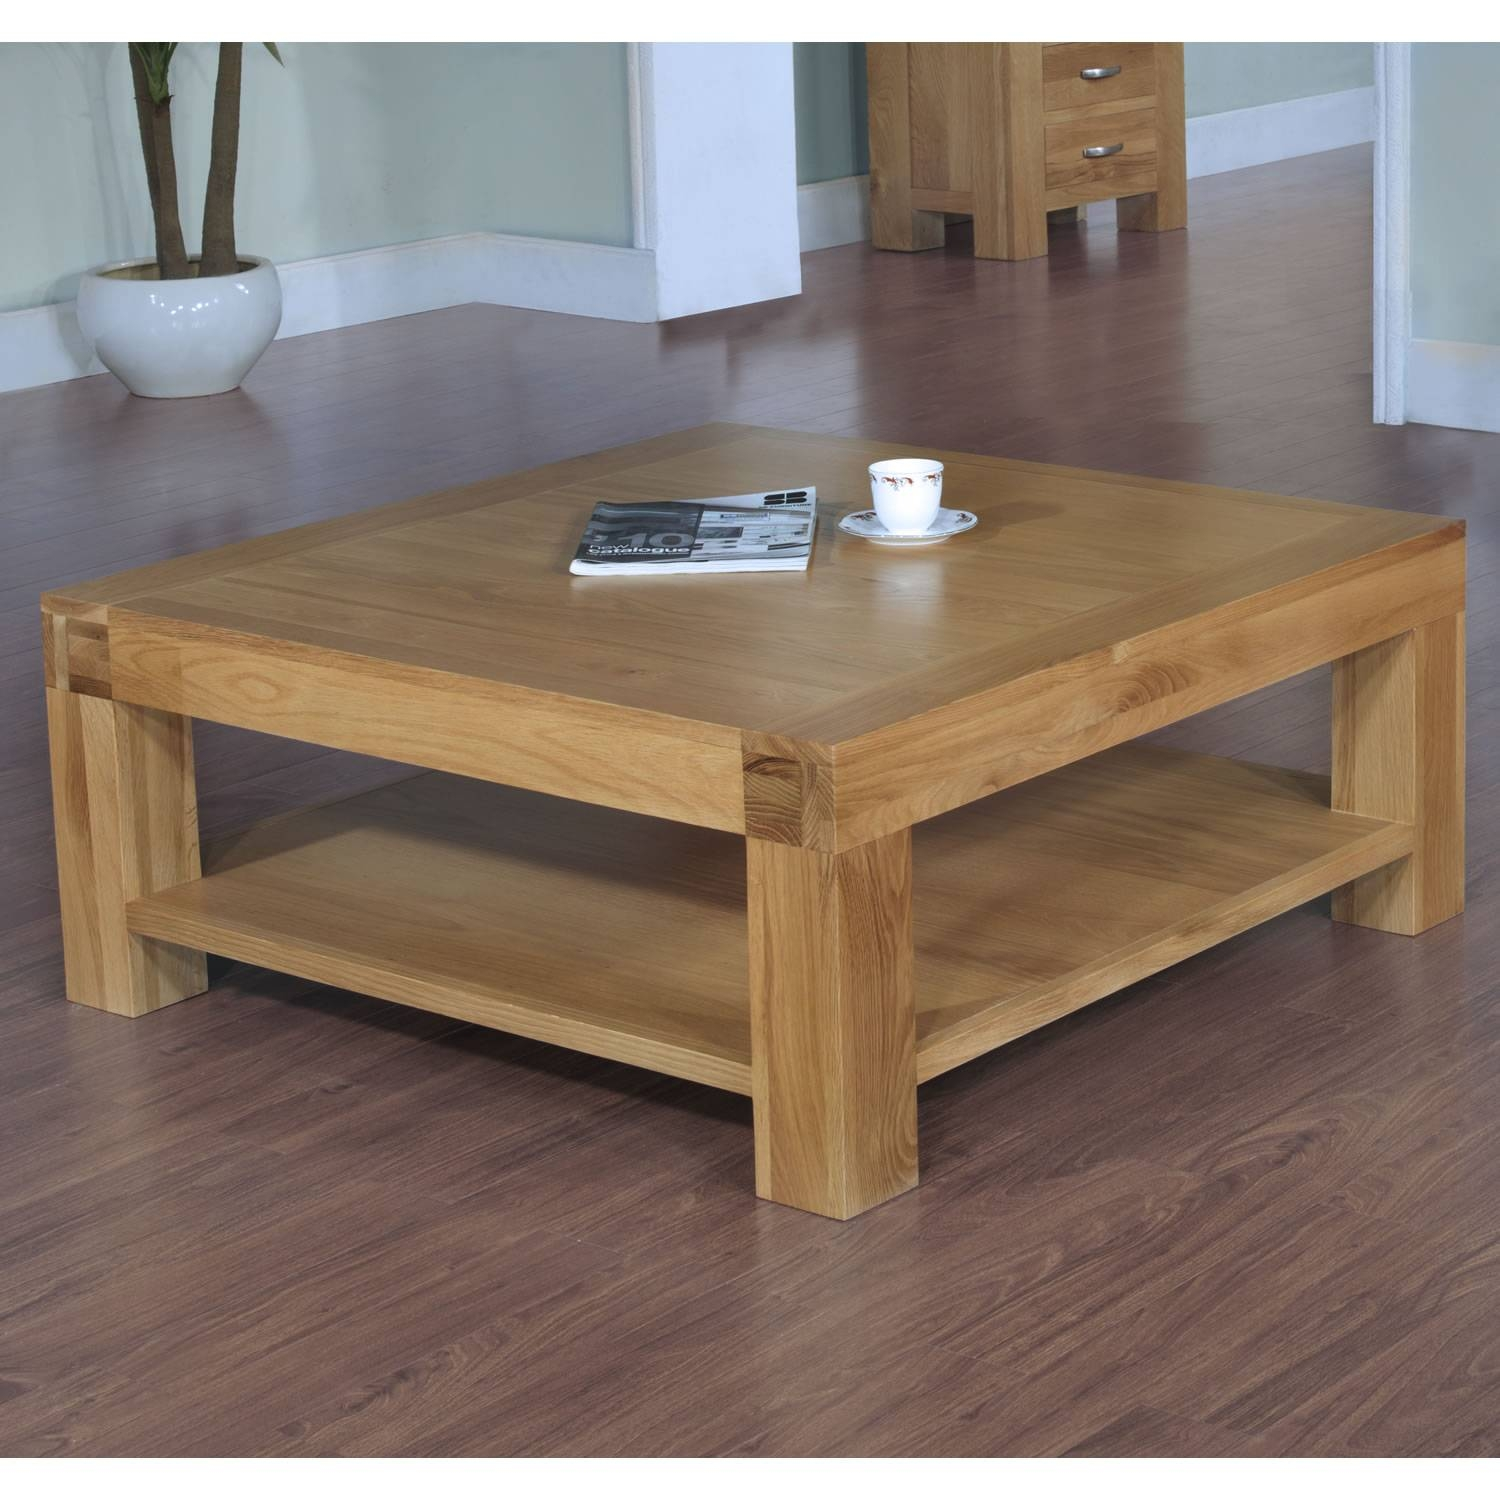 Helpful Square Coffee Tables | Home Furniture And Decor intended for Wooden Coffee Tables With Storage (Image 23 of 30)